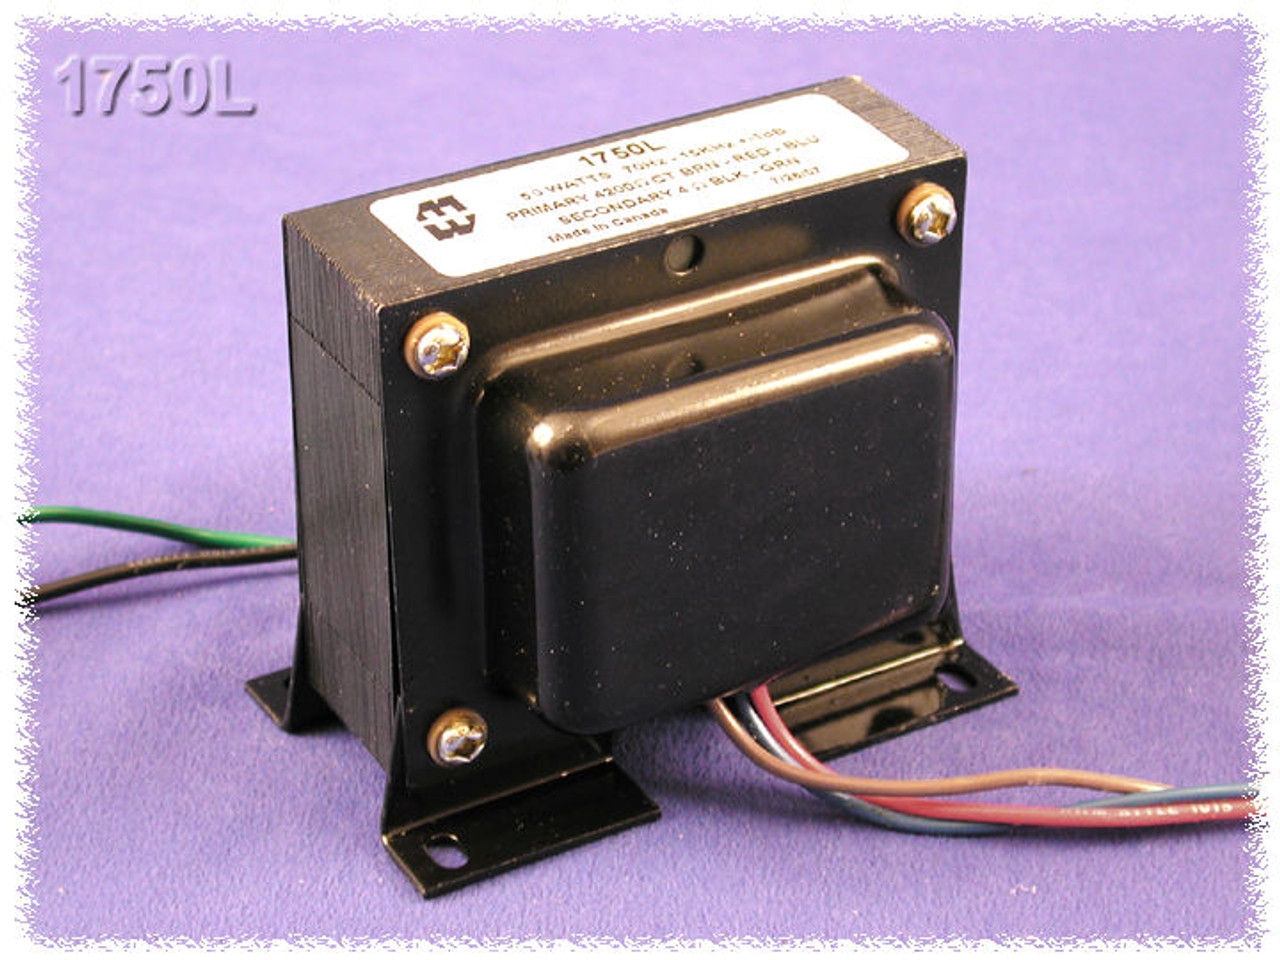 Hammond 1760L - Output Transformer UPGRADE